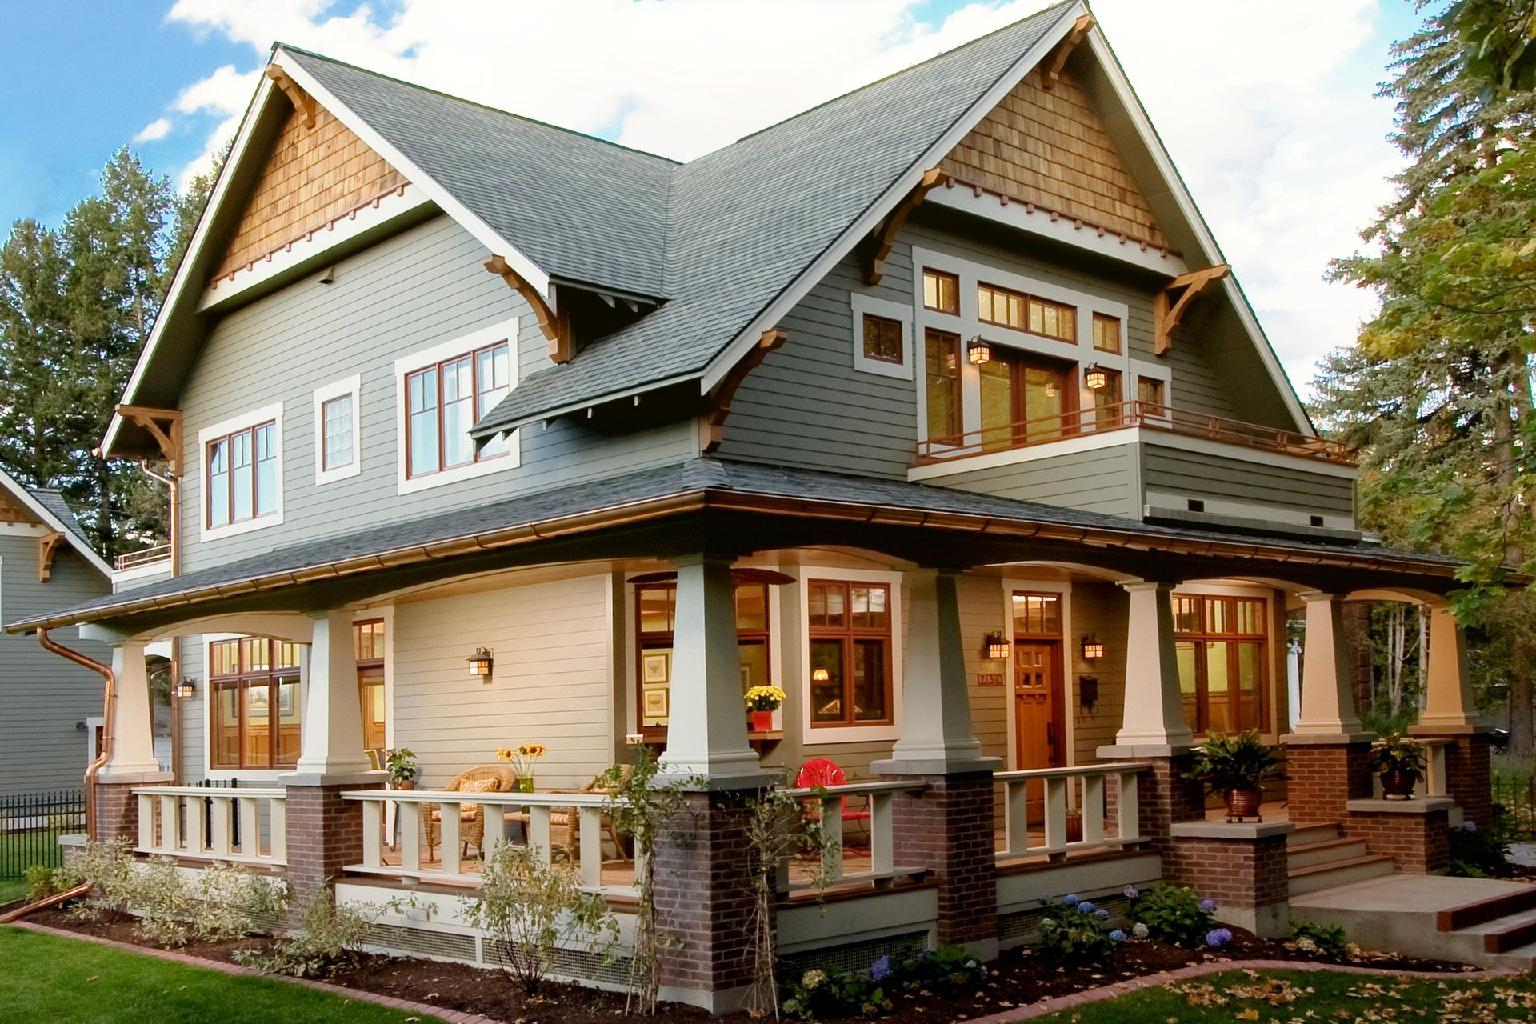 21 craftsman style house ideas with bedroom and kitchen On craftsman style home designs